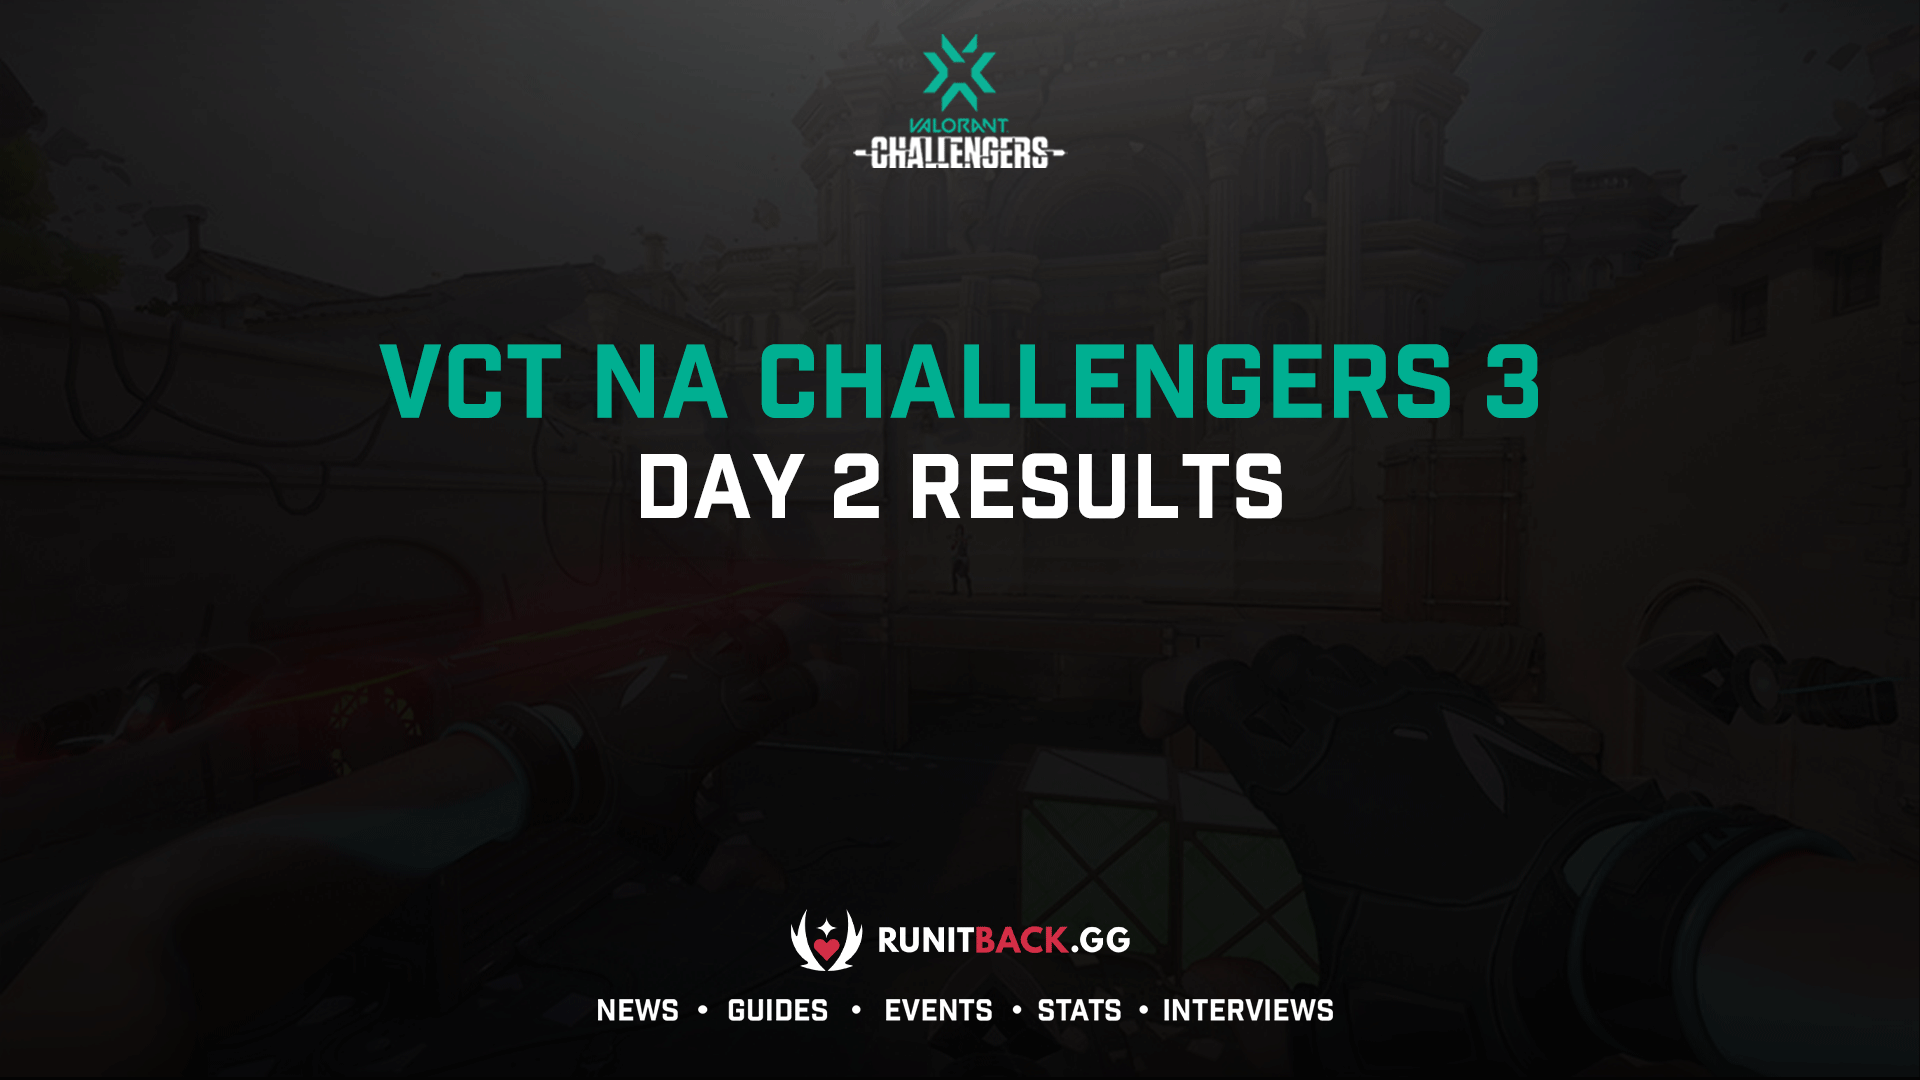 VCT NA Challengers 3 Main Event: Day 2 Results